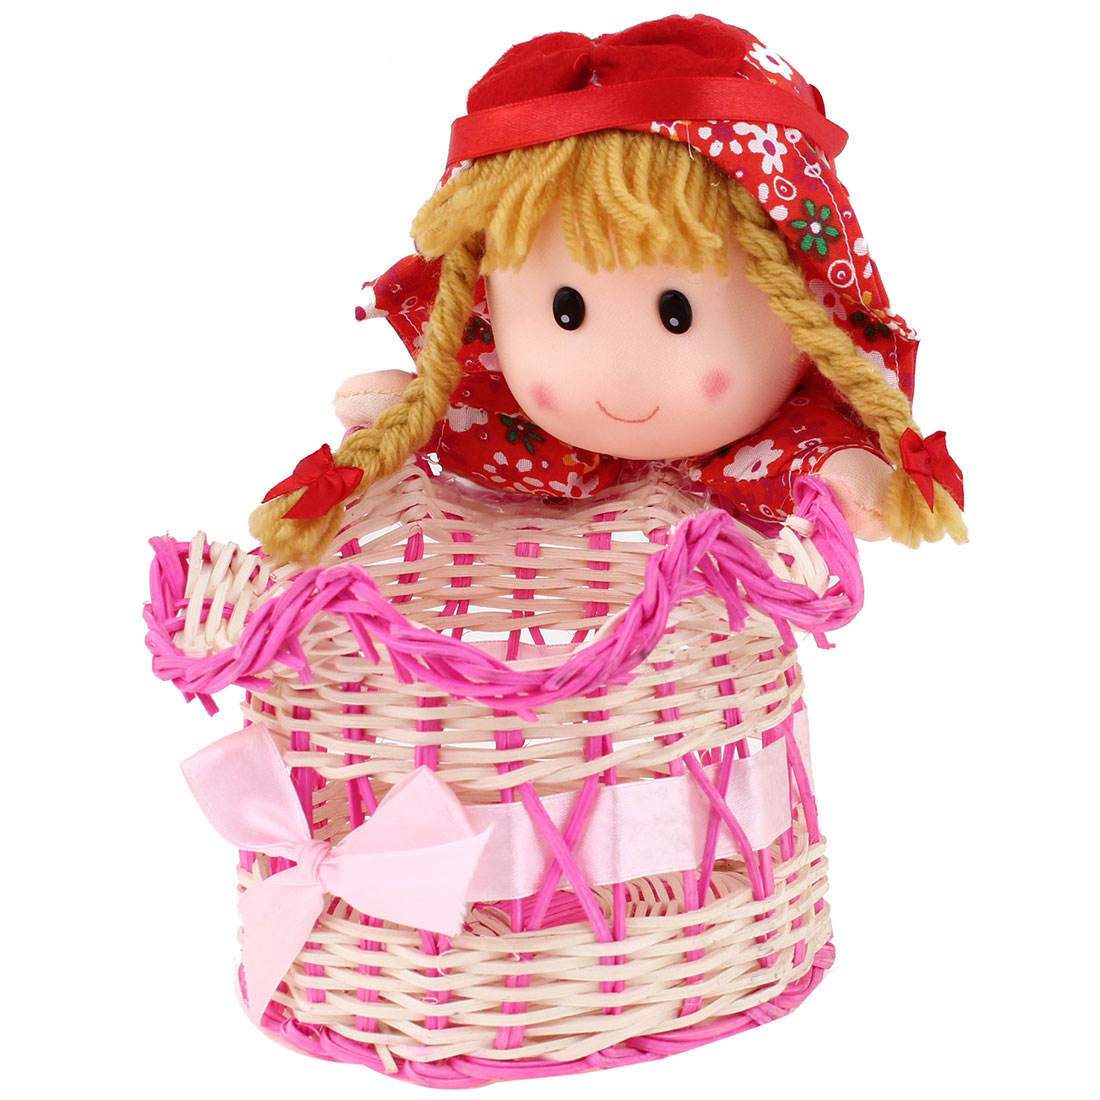 Home Fuchsia Pale Yellow Bamboo Doll Decor Vase Pen Cell Phone Basket Holder